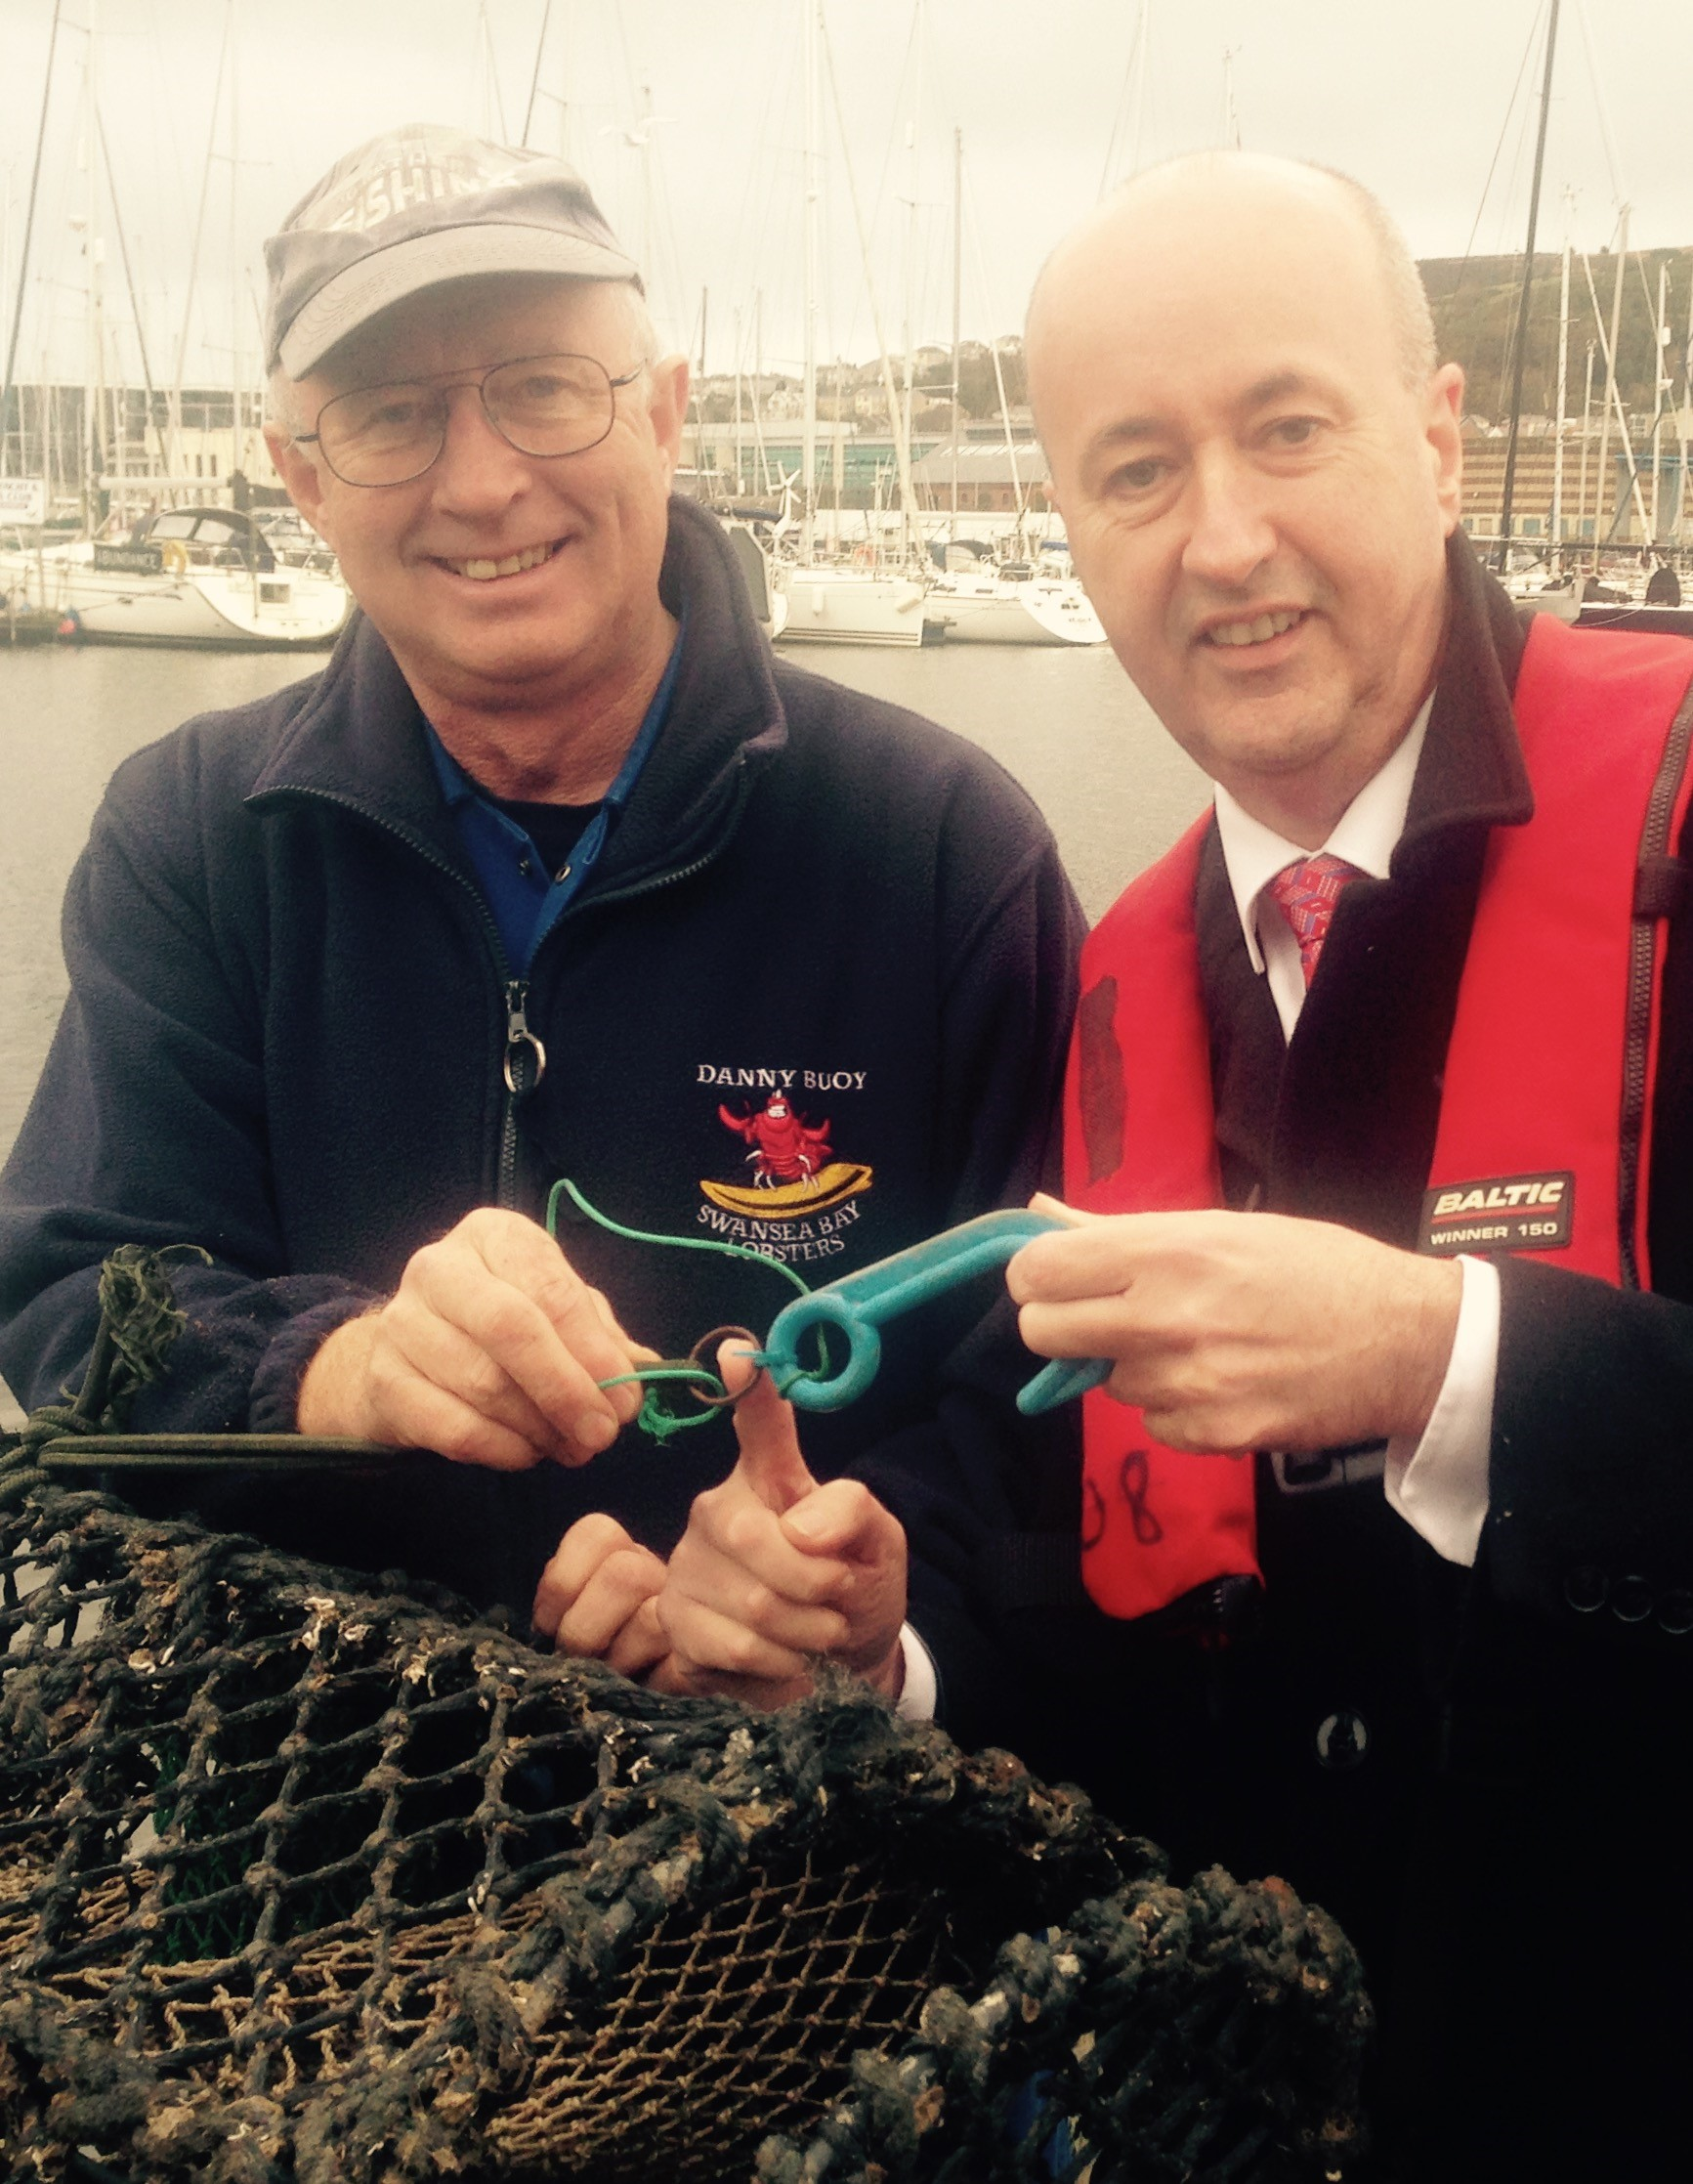 Skipper of Danny Buoy Nigel Sanders shows Geraint Davies MP lobster pot that becomes safe after loss